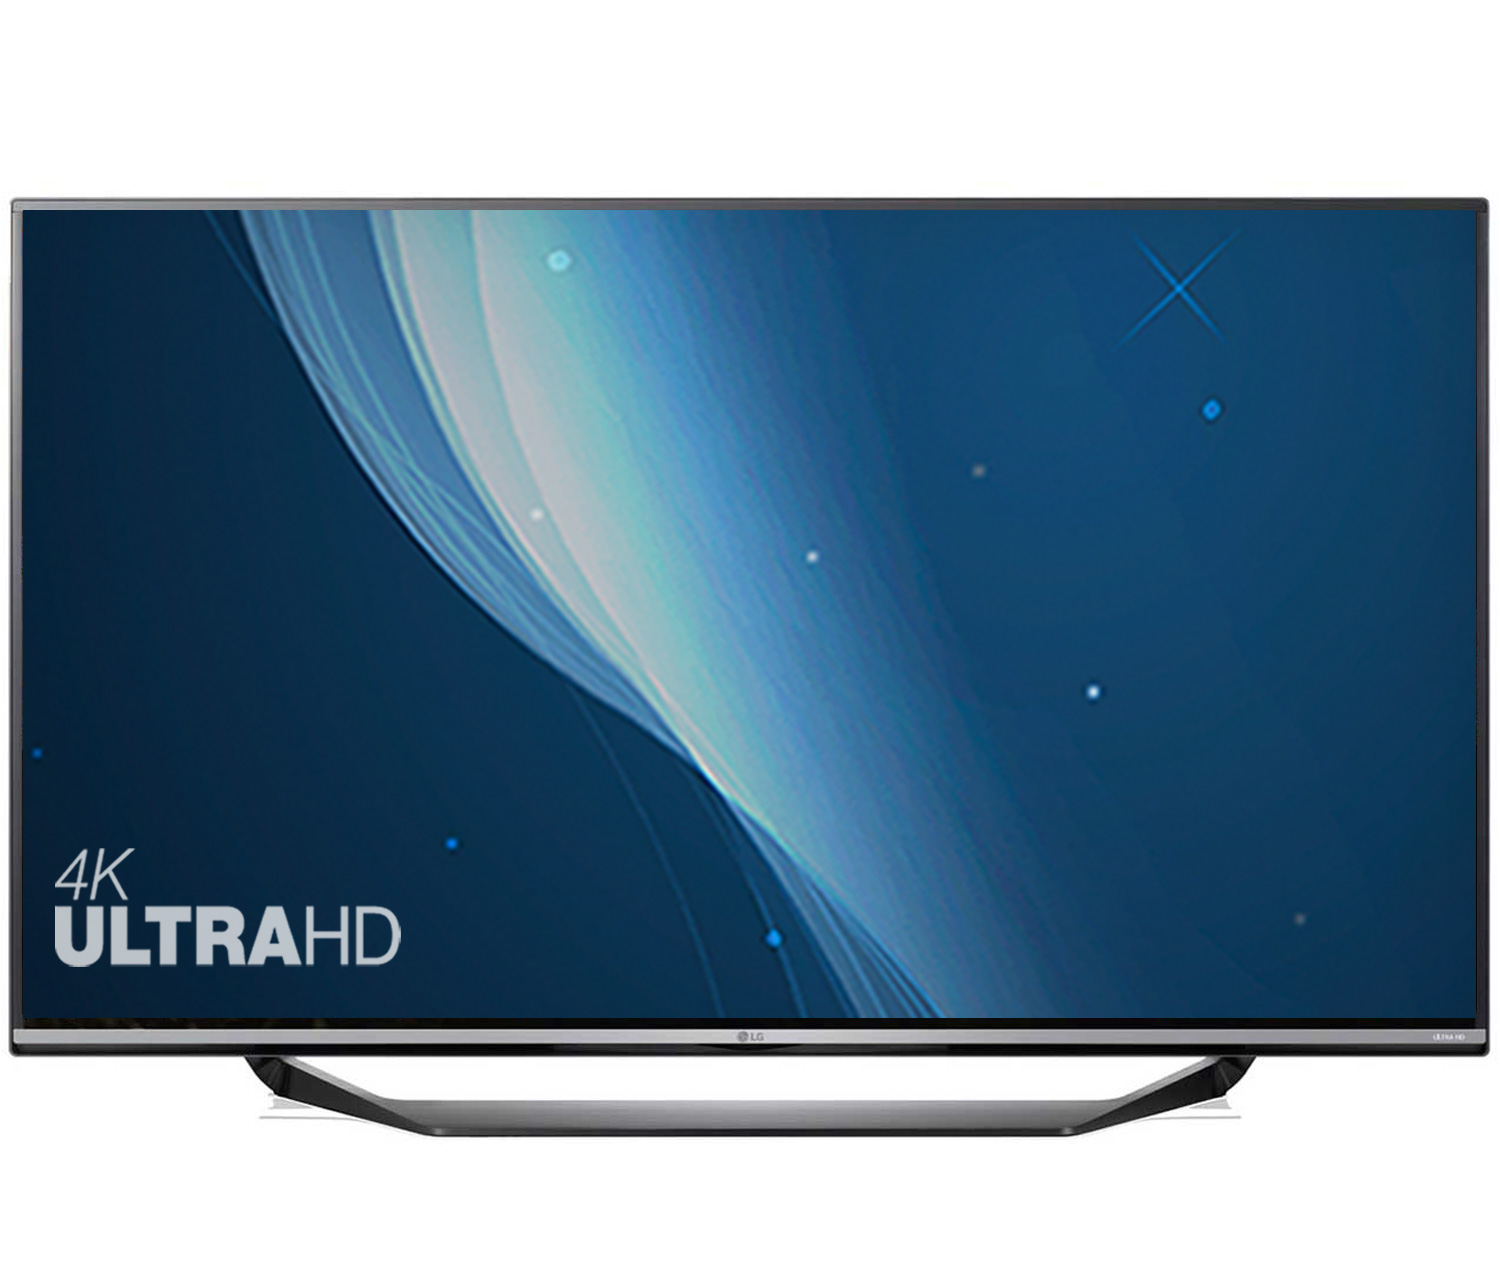 Tv 65 Inch Lg 65uf770v Smart 4k Ultra Hd 65 Inch Led Tv Refurbished